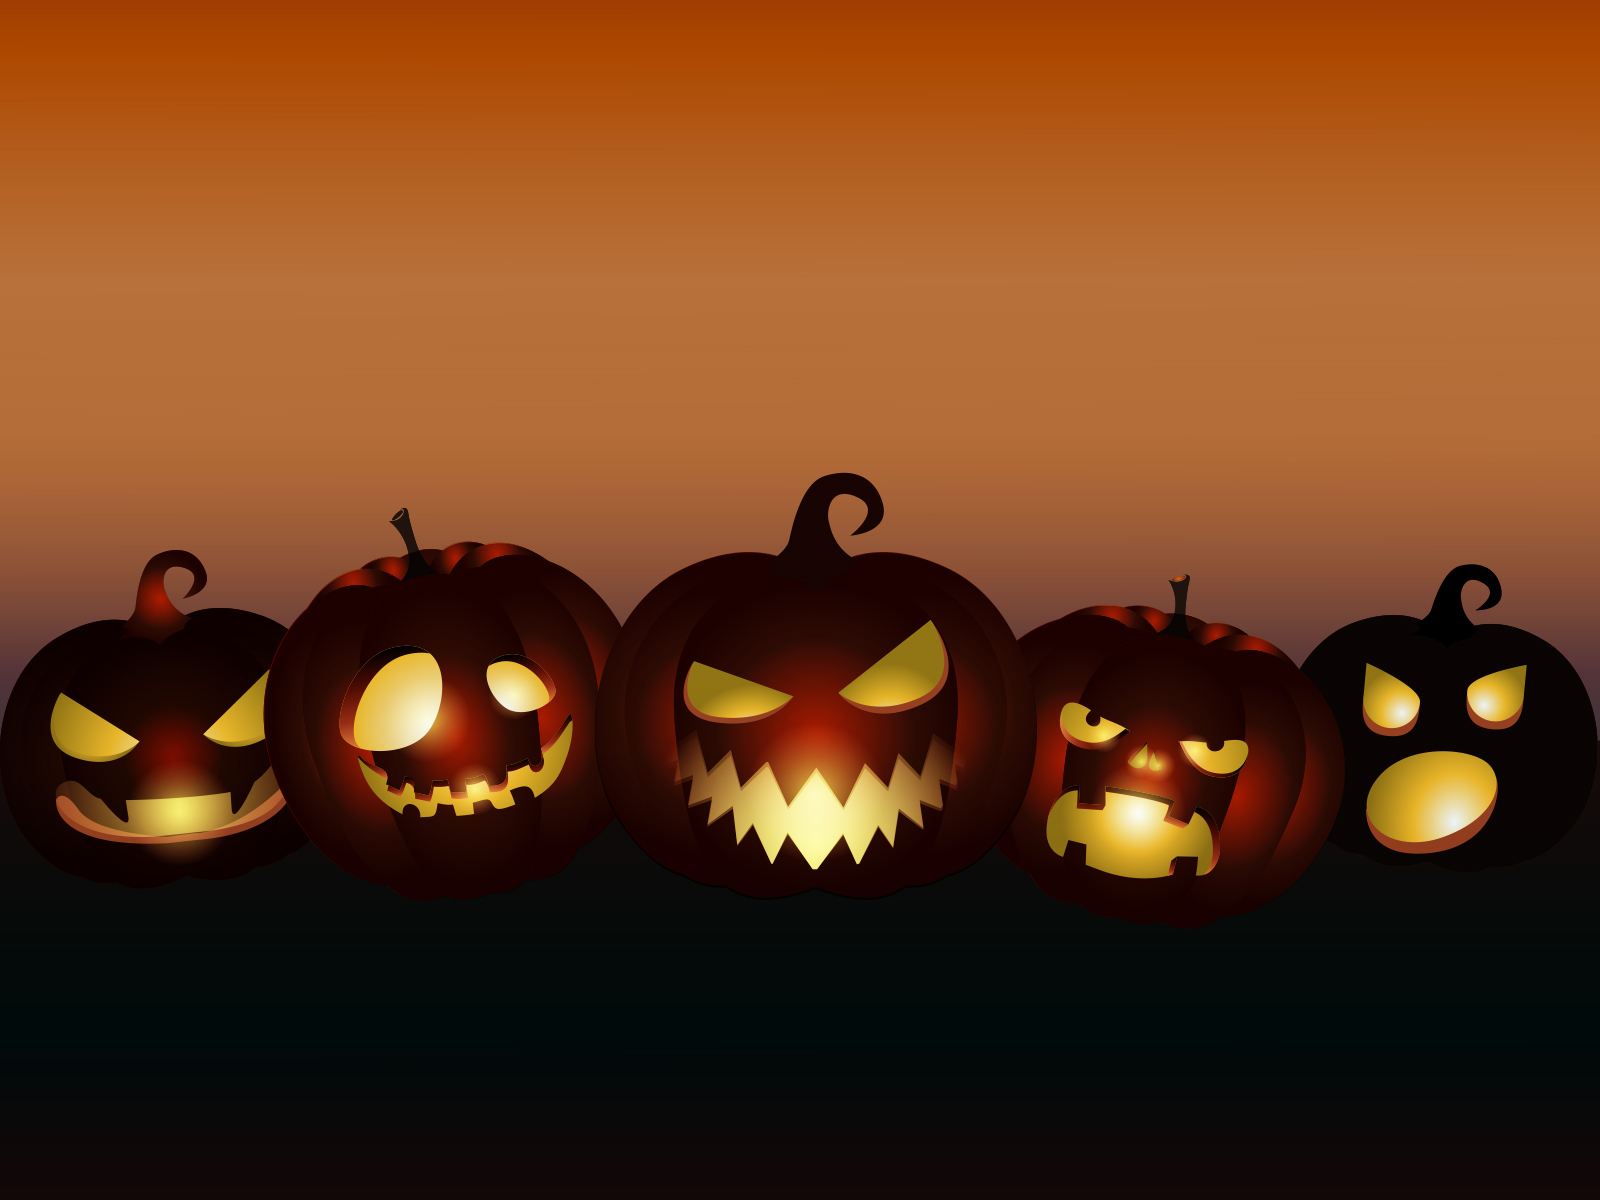 Evil Pumpkins Halloween Ppt Backgrounds Black Cartoon